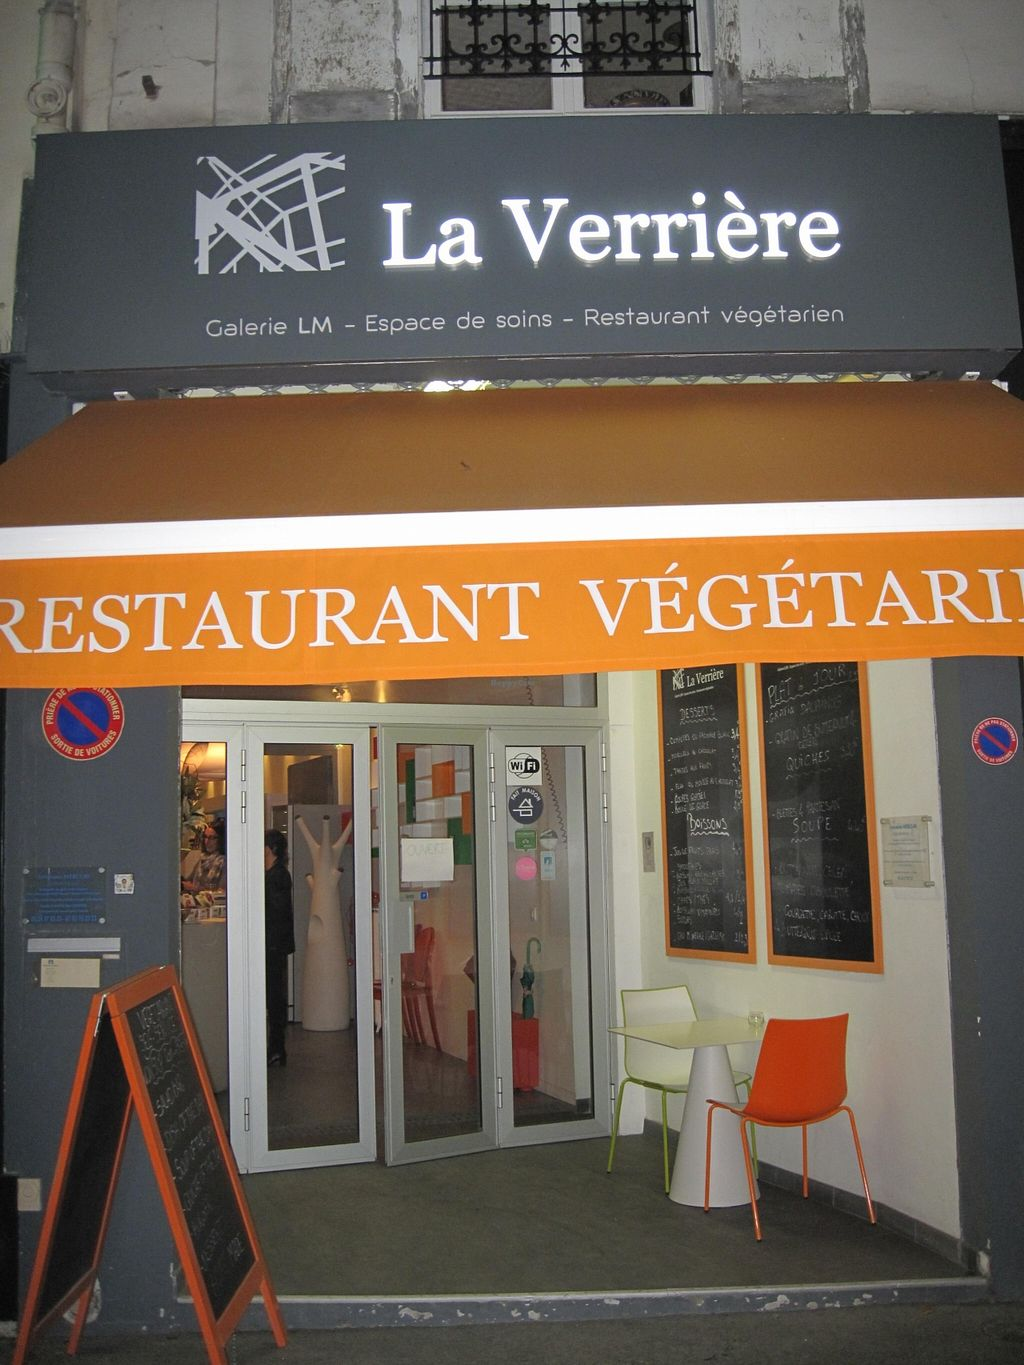 """Photo of La Verriere  by <a href=""""/members/profile/VeganFranzi"""">VeganFranzi</a> <br/>La Verriere von aussen <br/> October 29, 2015  - <a href='/contact/abuse/image/51744/123082'>Report</a>"""